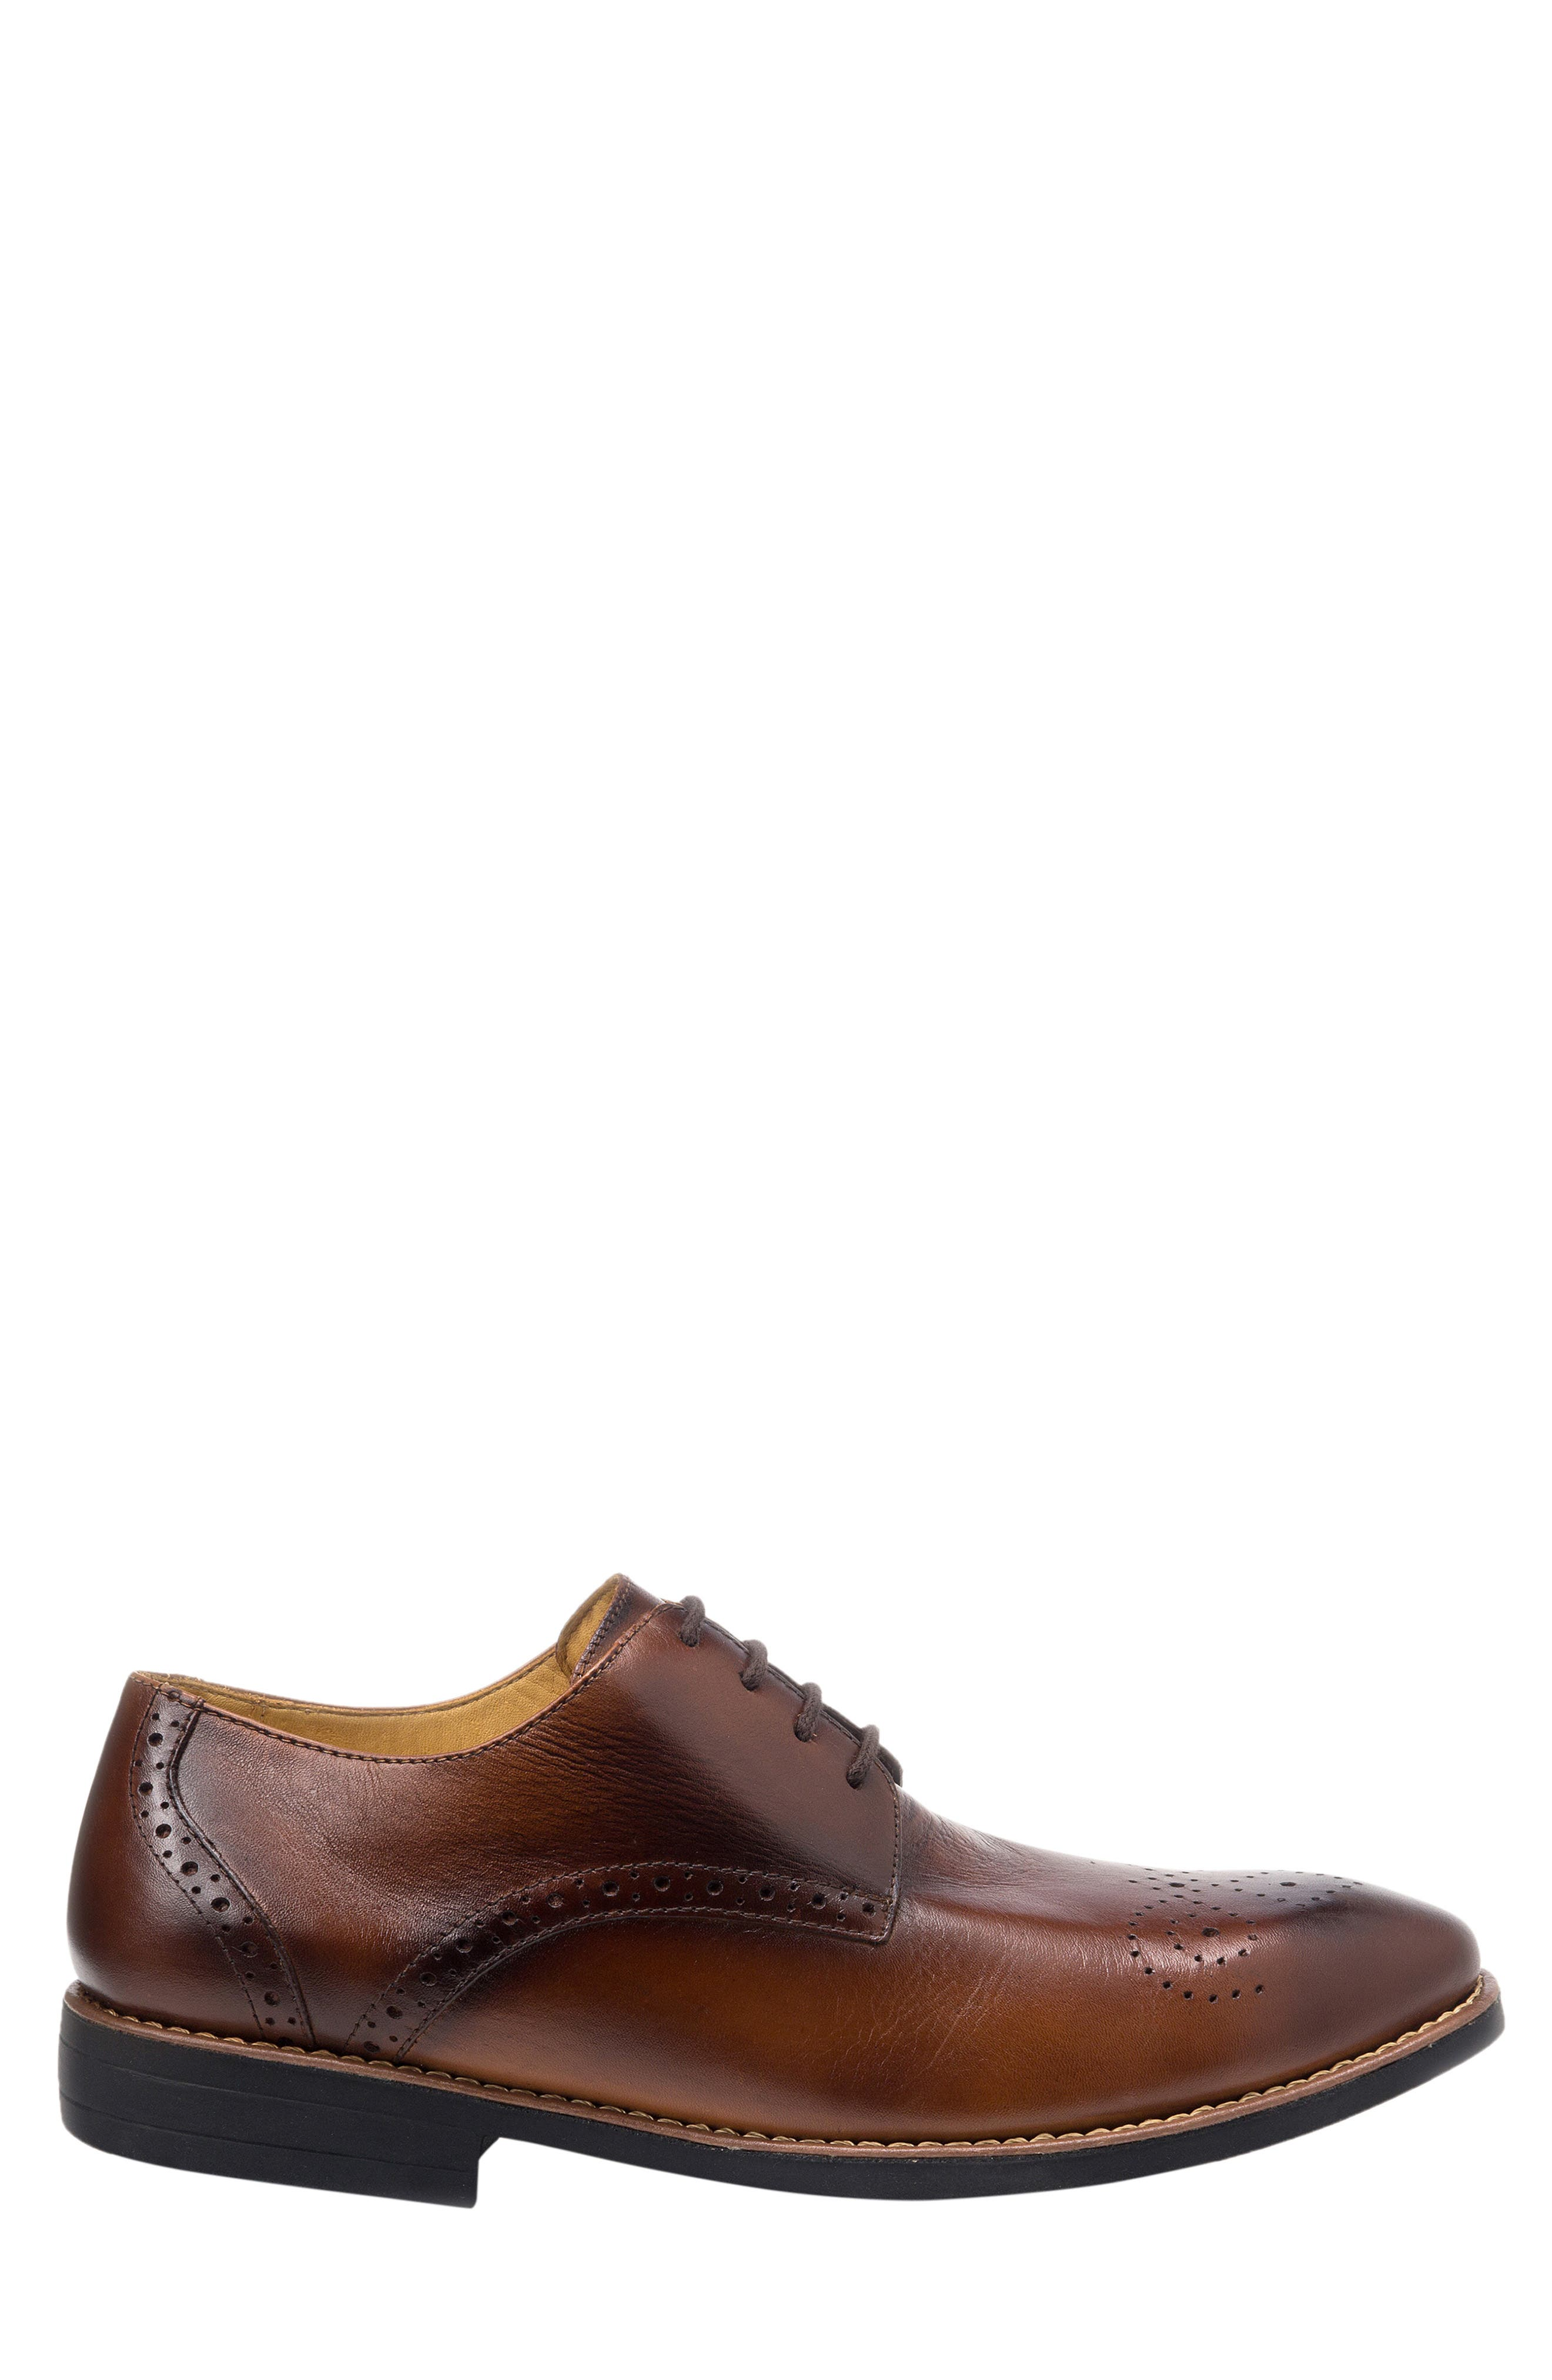 SANDRO MOSCOLONI, Mended Medallion Toe Derby, Alternate thumbnail 3, color, BROWN LEATHER